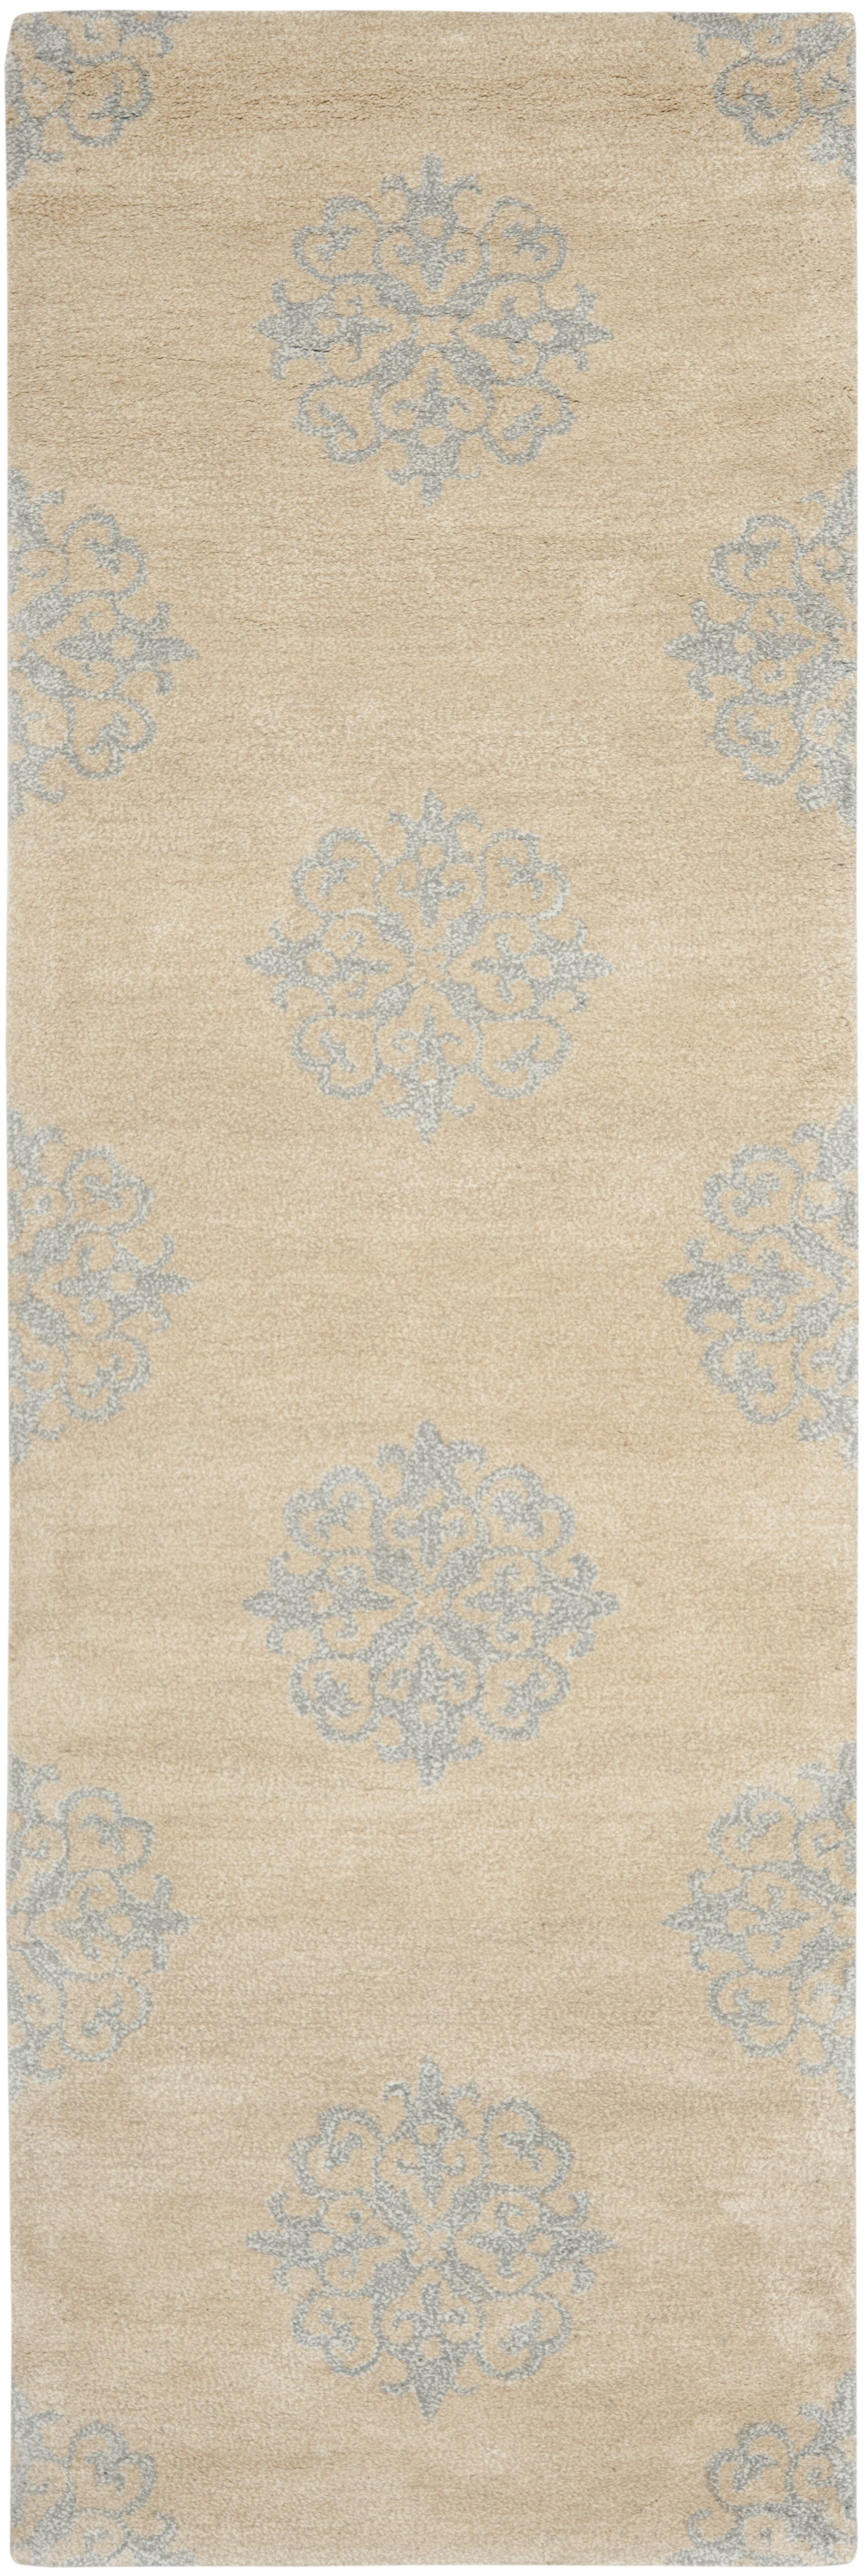 Marcello Hand-Tufted Beige Area Rug Rug Size: Runner 2'6